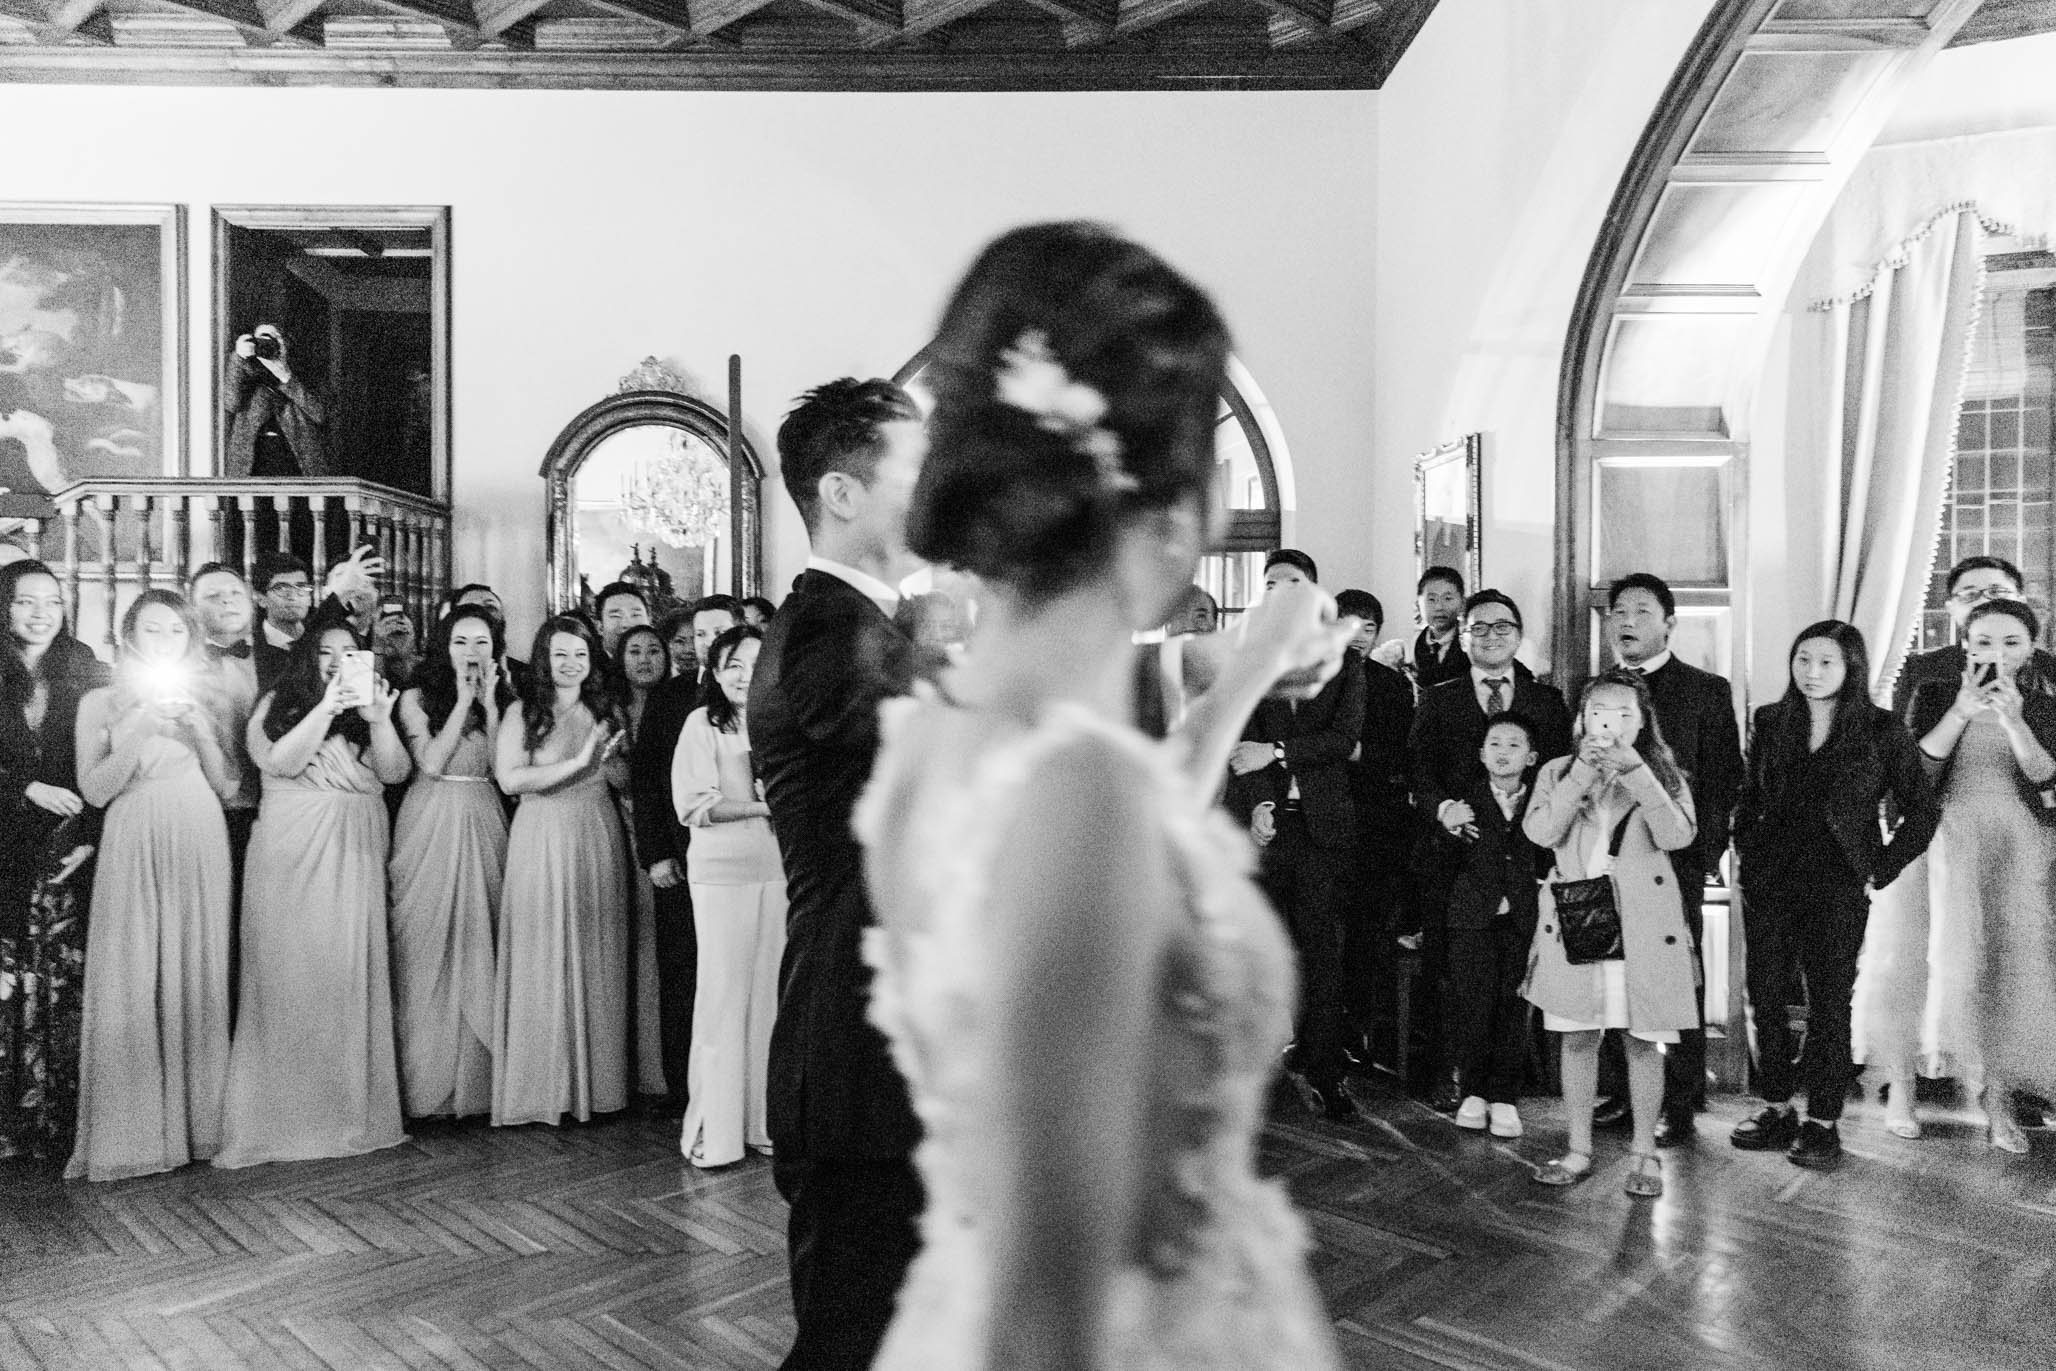 Reveling in their first dance as husband and wife.